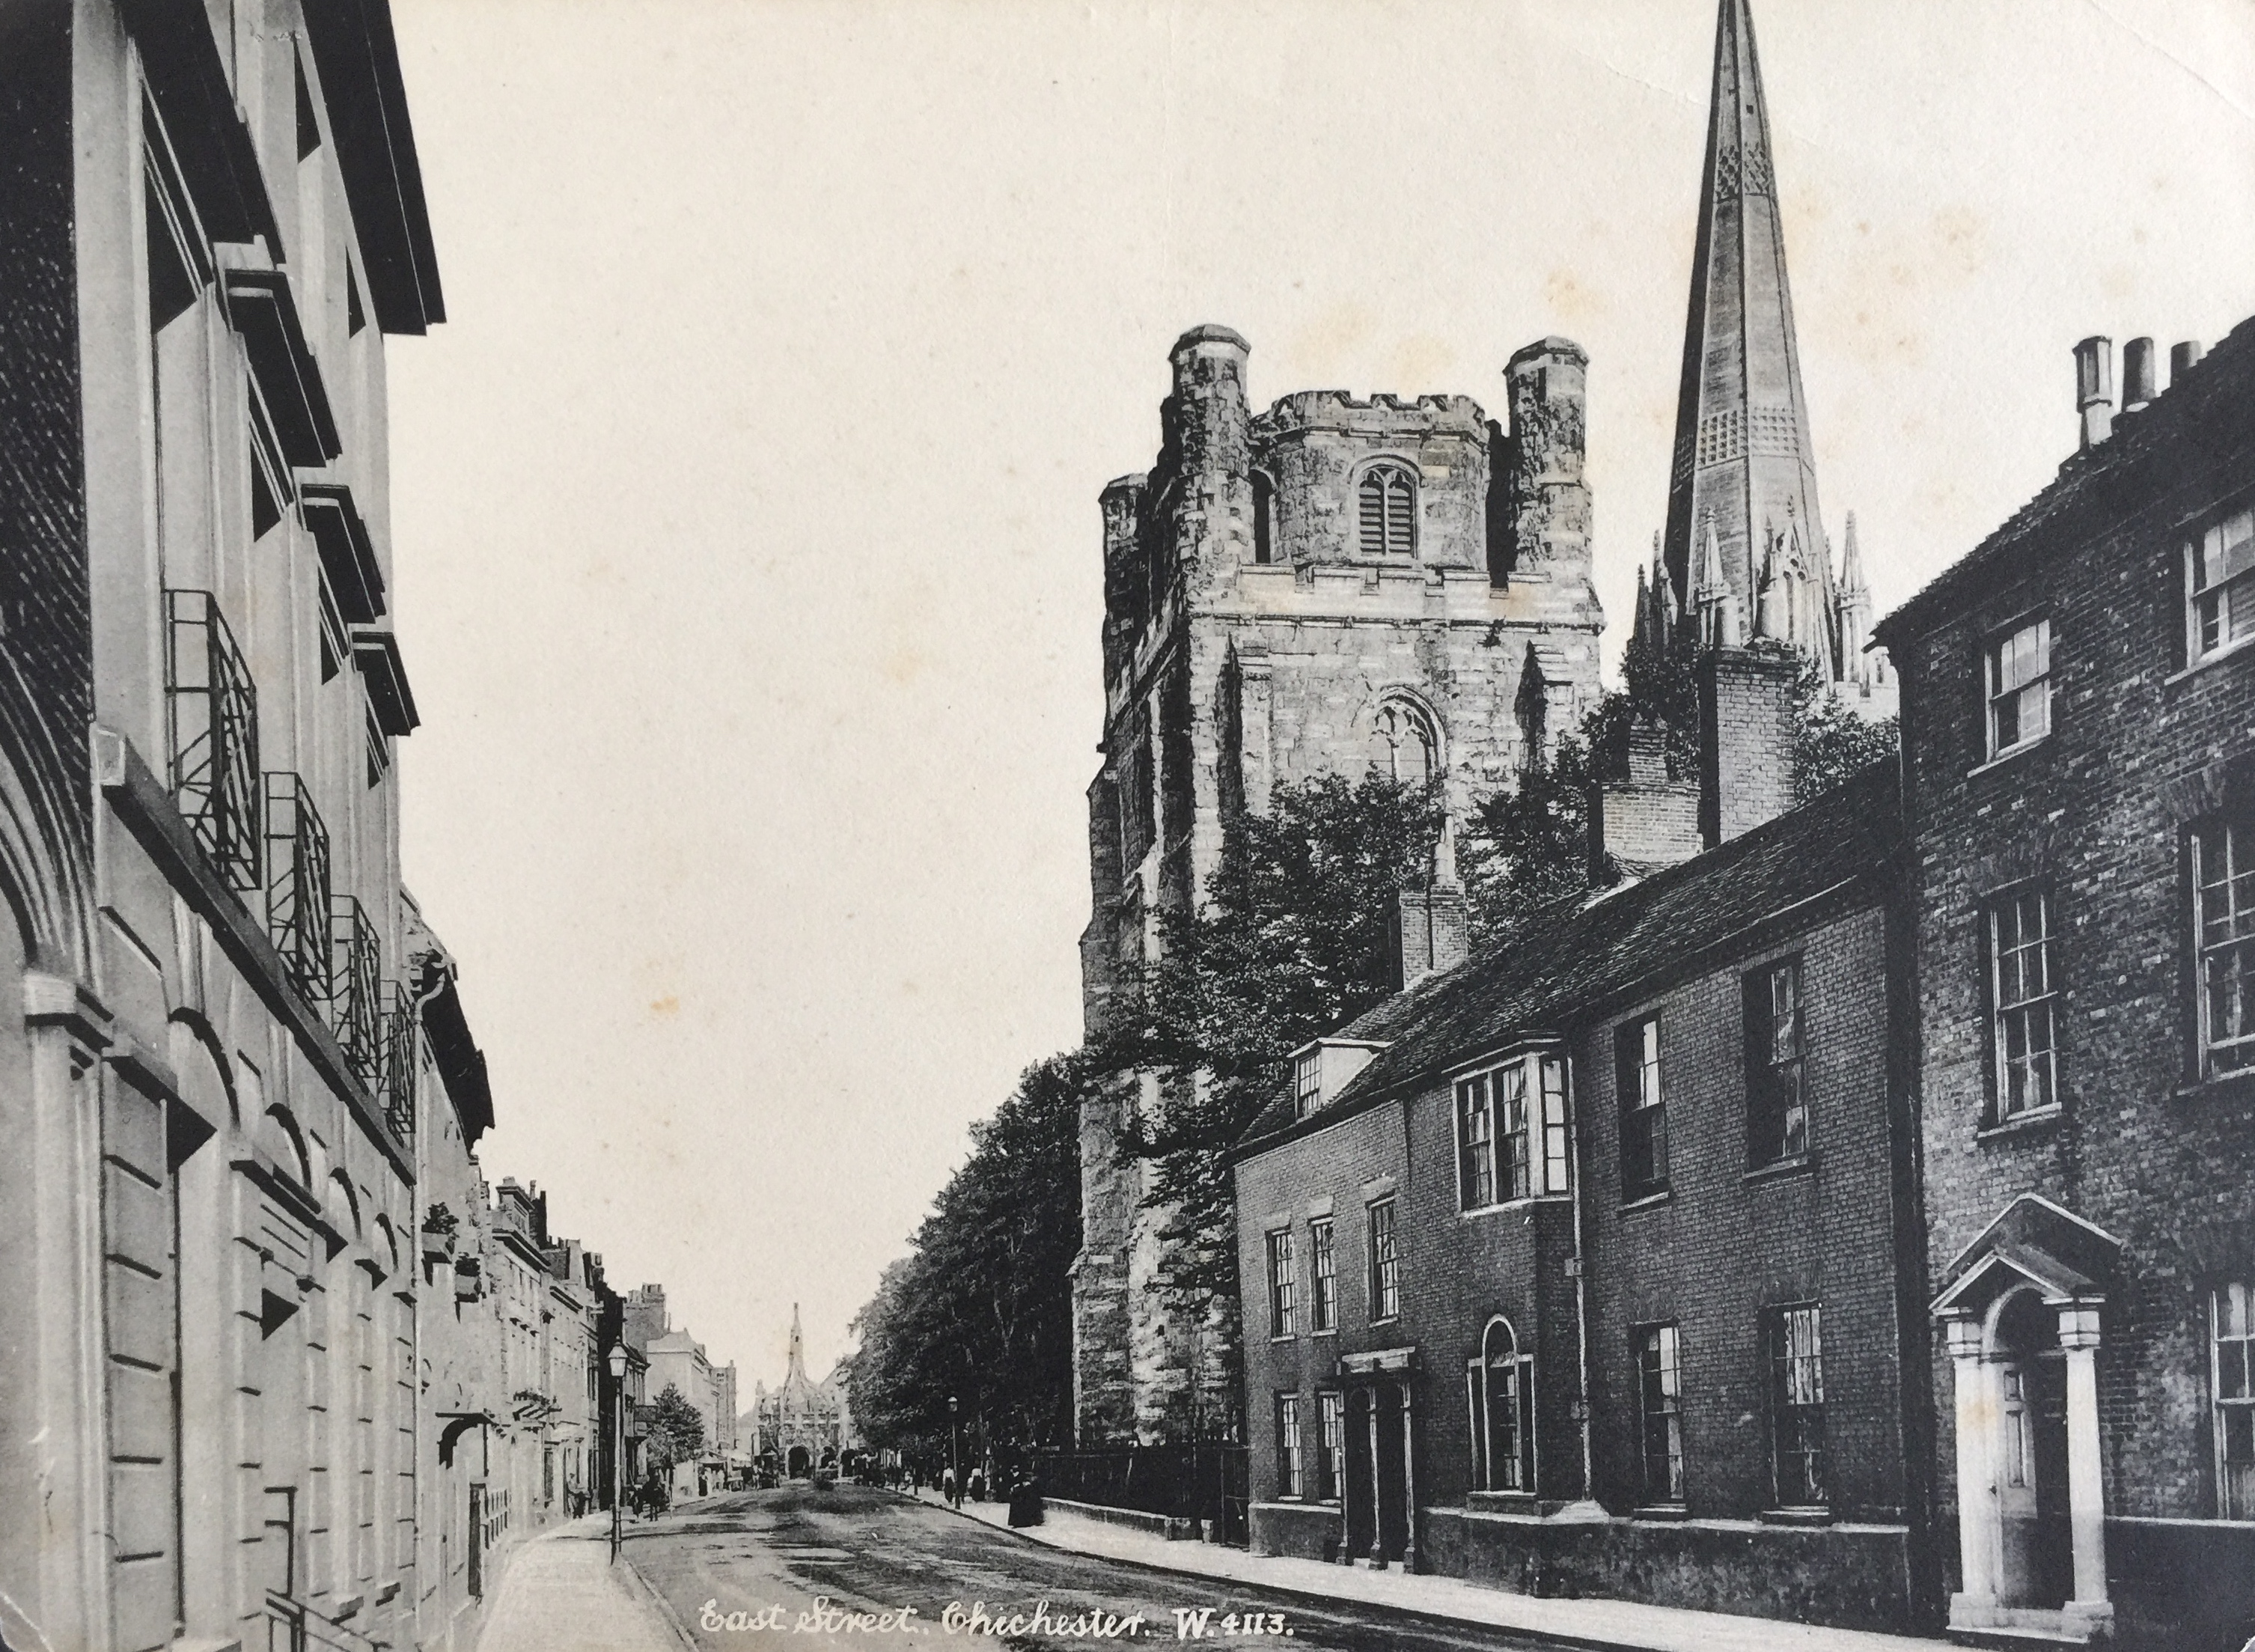 West Street, Chichester (in spite of the caption!) early C20? - Collection Ken Green